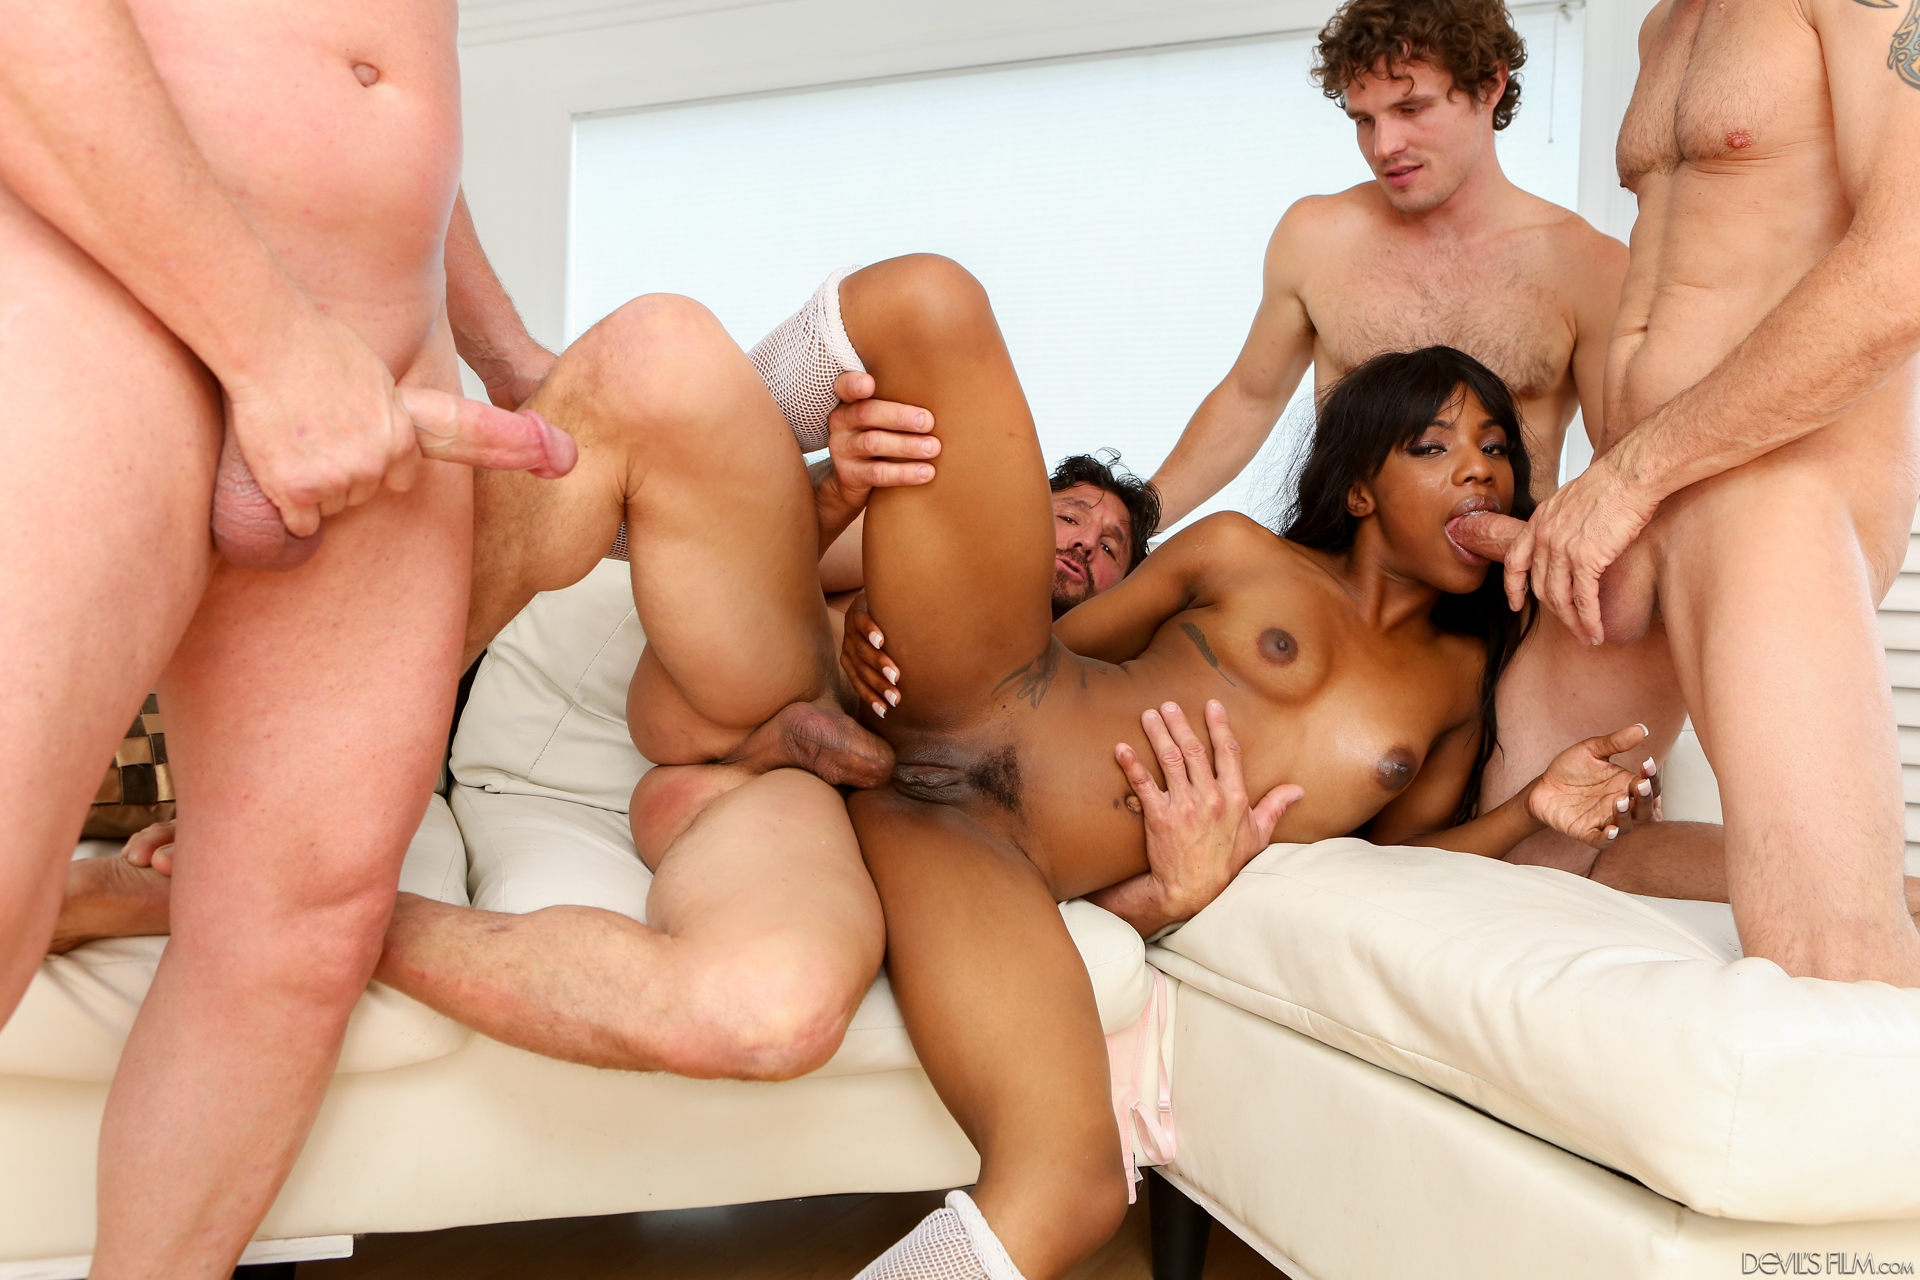 Black Girl White Guy  Most Sexy Porn  Free Hd  4K Photos-3441